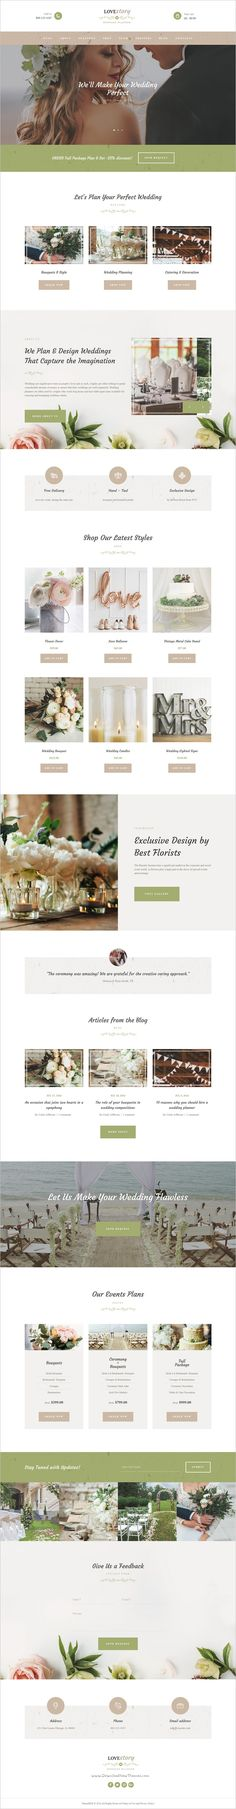 Love Story is an elegant #WordPress theme for #wedding #planning agency, an individual wedding or any event planning company website with a fashionable and tender look download now➩ https://themeforest.net/item/love-story-wedding-and-event-planner/18010473?ref=Datasata